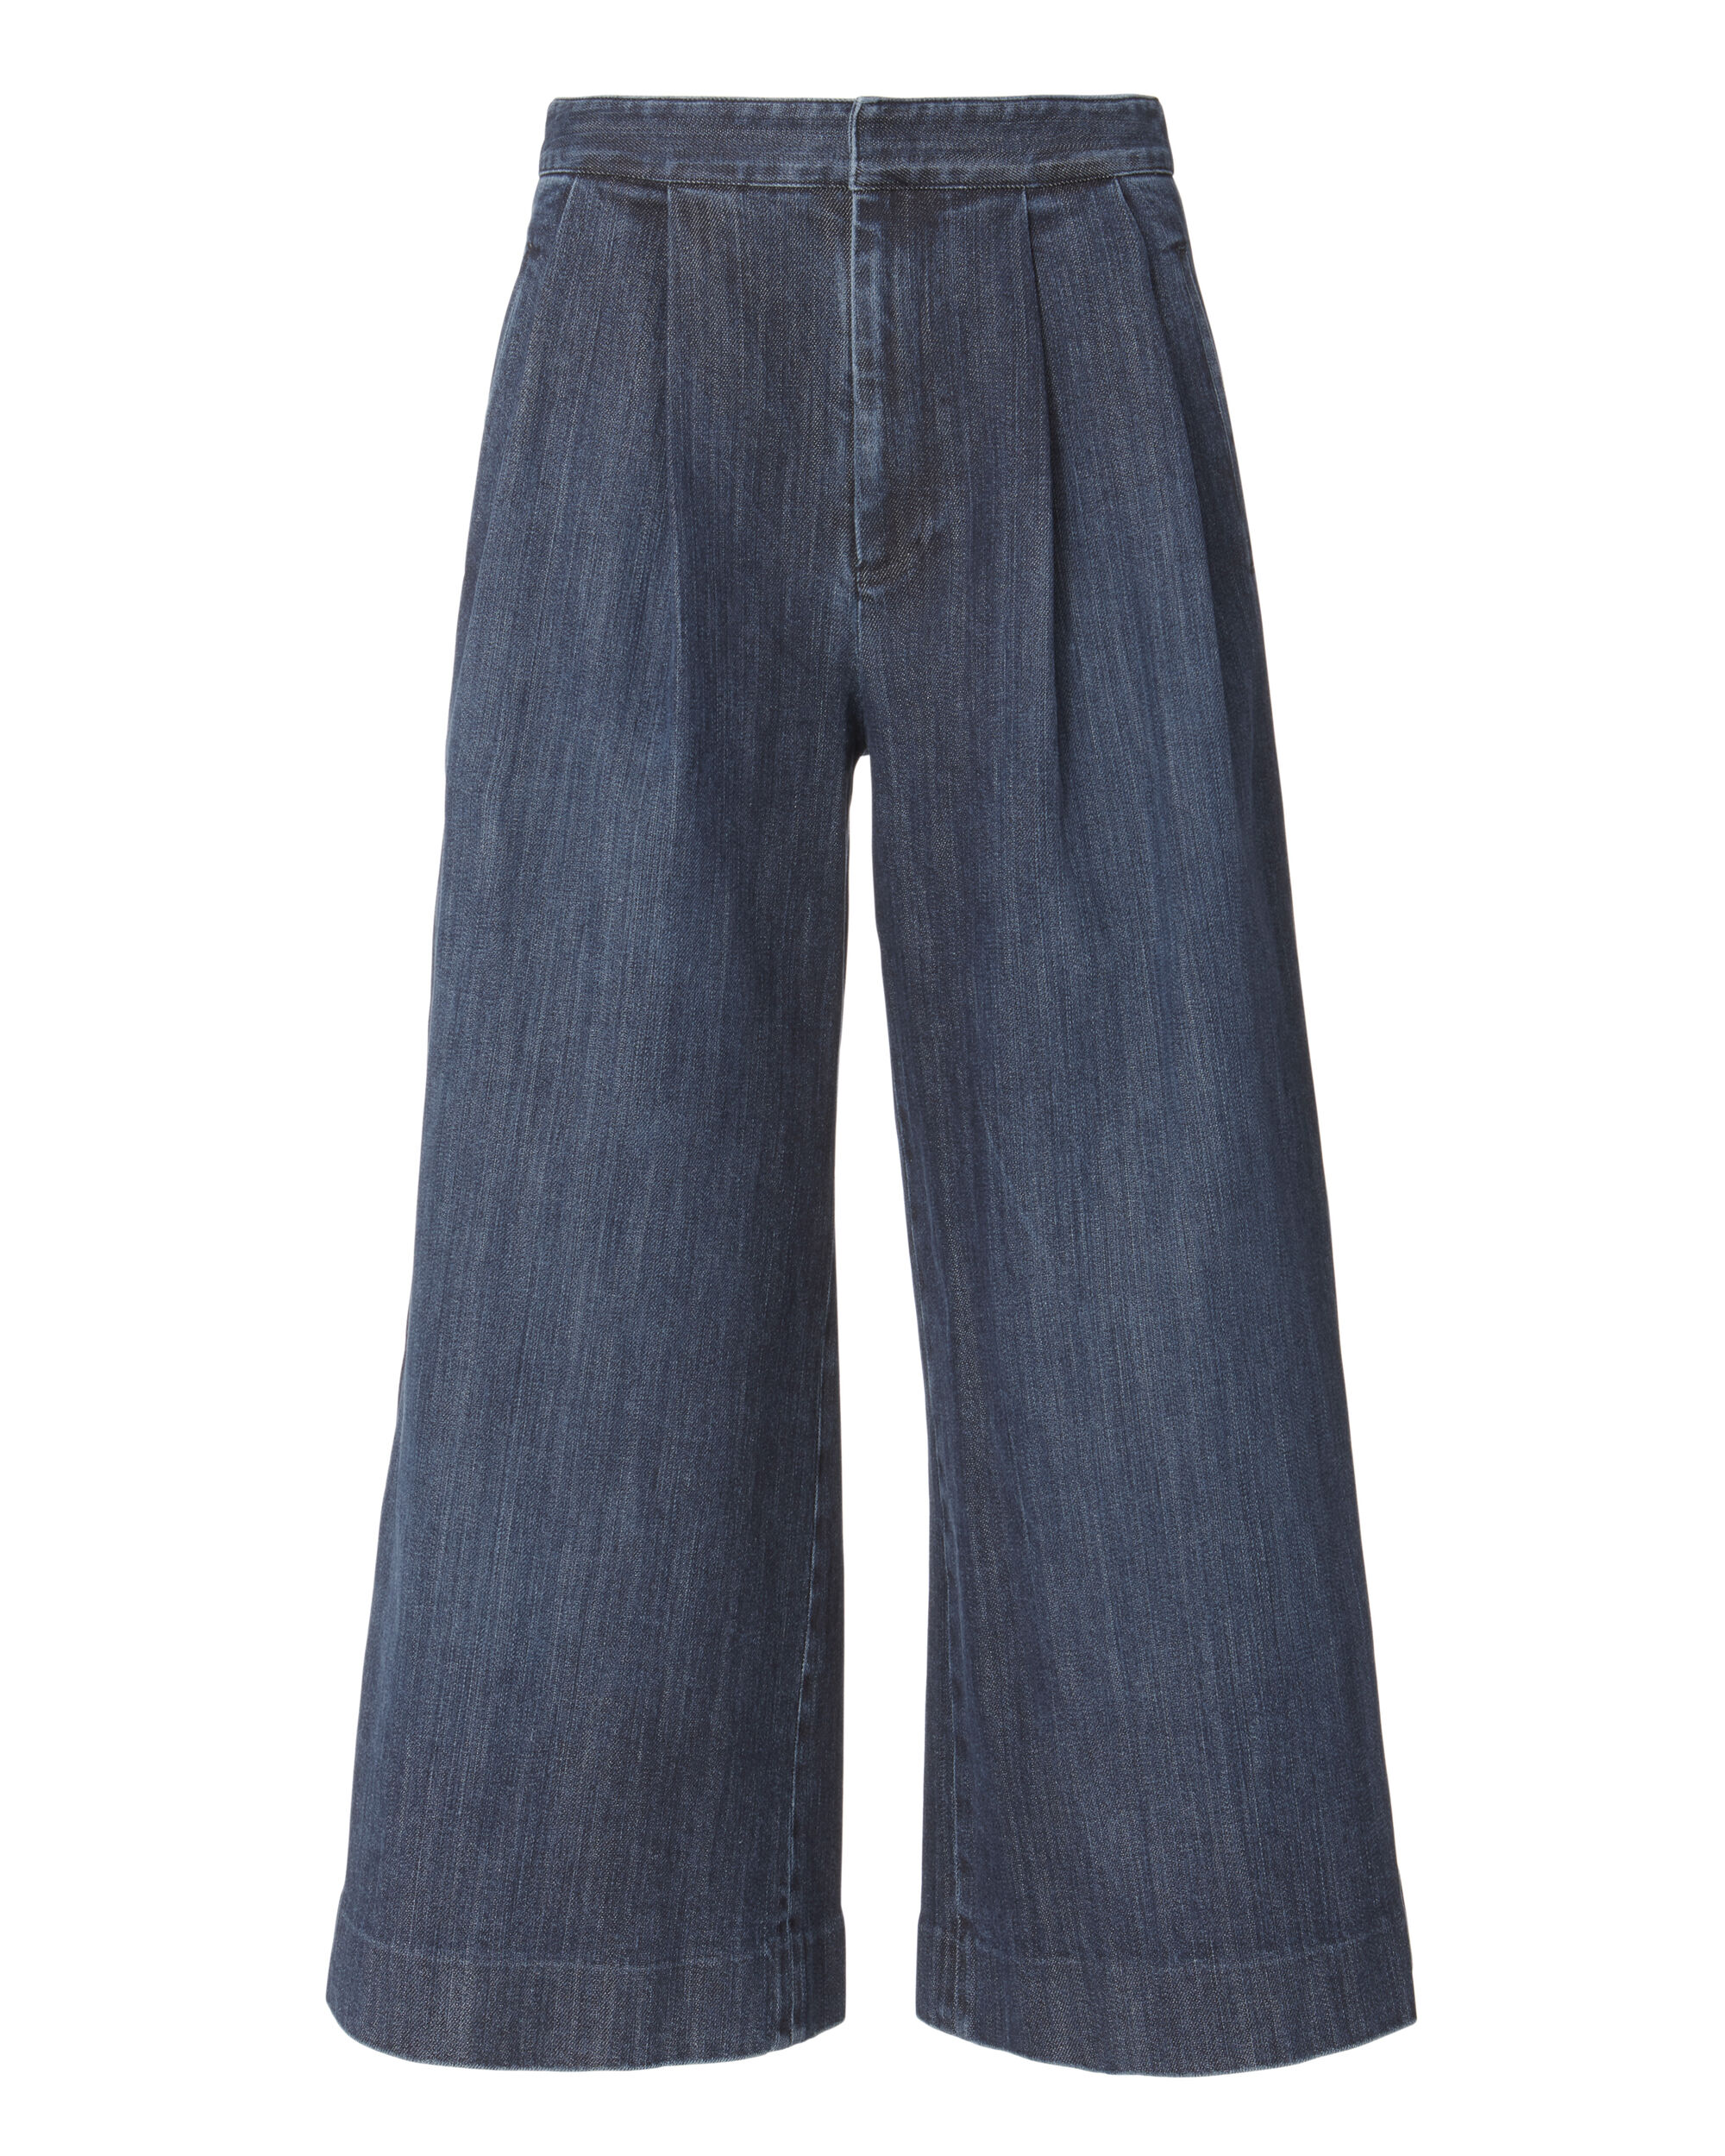 Cropped Pleated Front Jeans, BLUE-DRK, hi-res